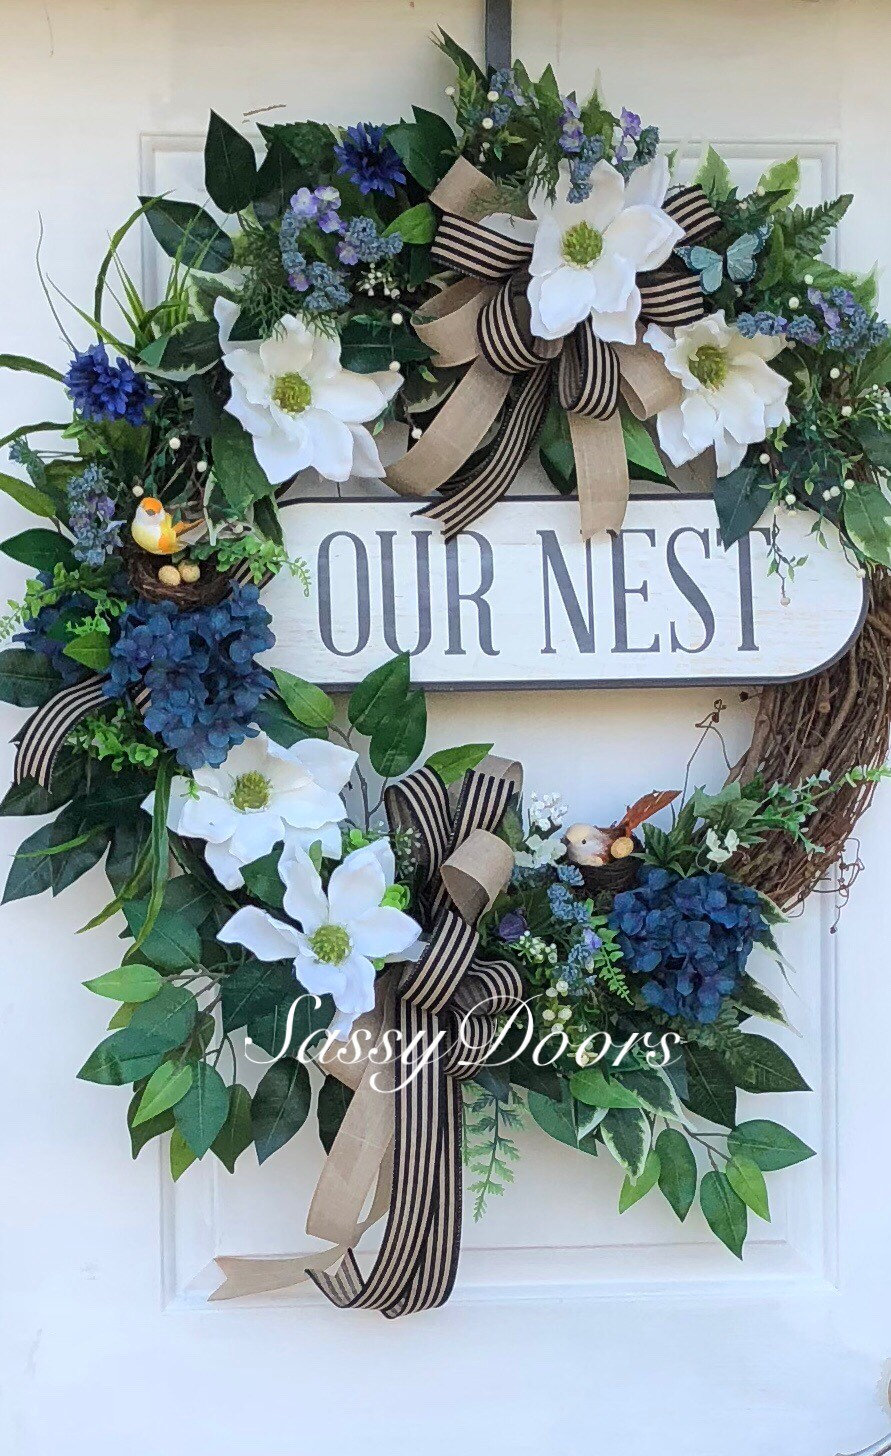 Everyday Wreath, Grapevine Wreath, Magnolia Wreath, Front Door Wreath,  Sassy Doors Wreath, Hydrangeas Wreath, Blue Wreath